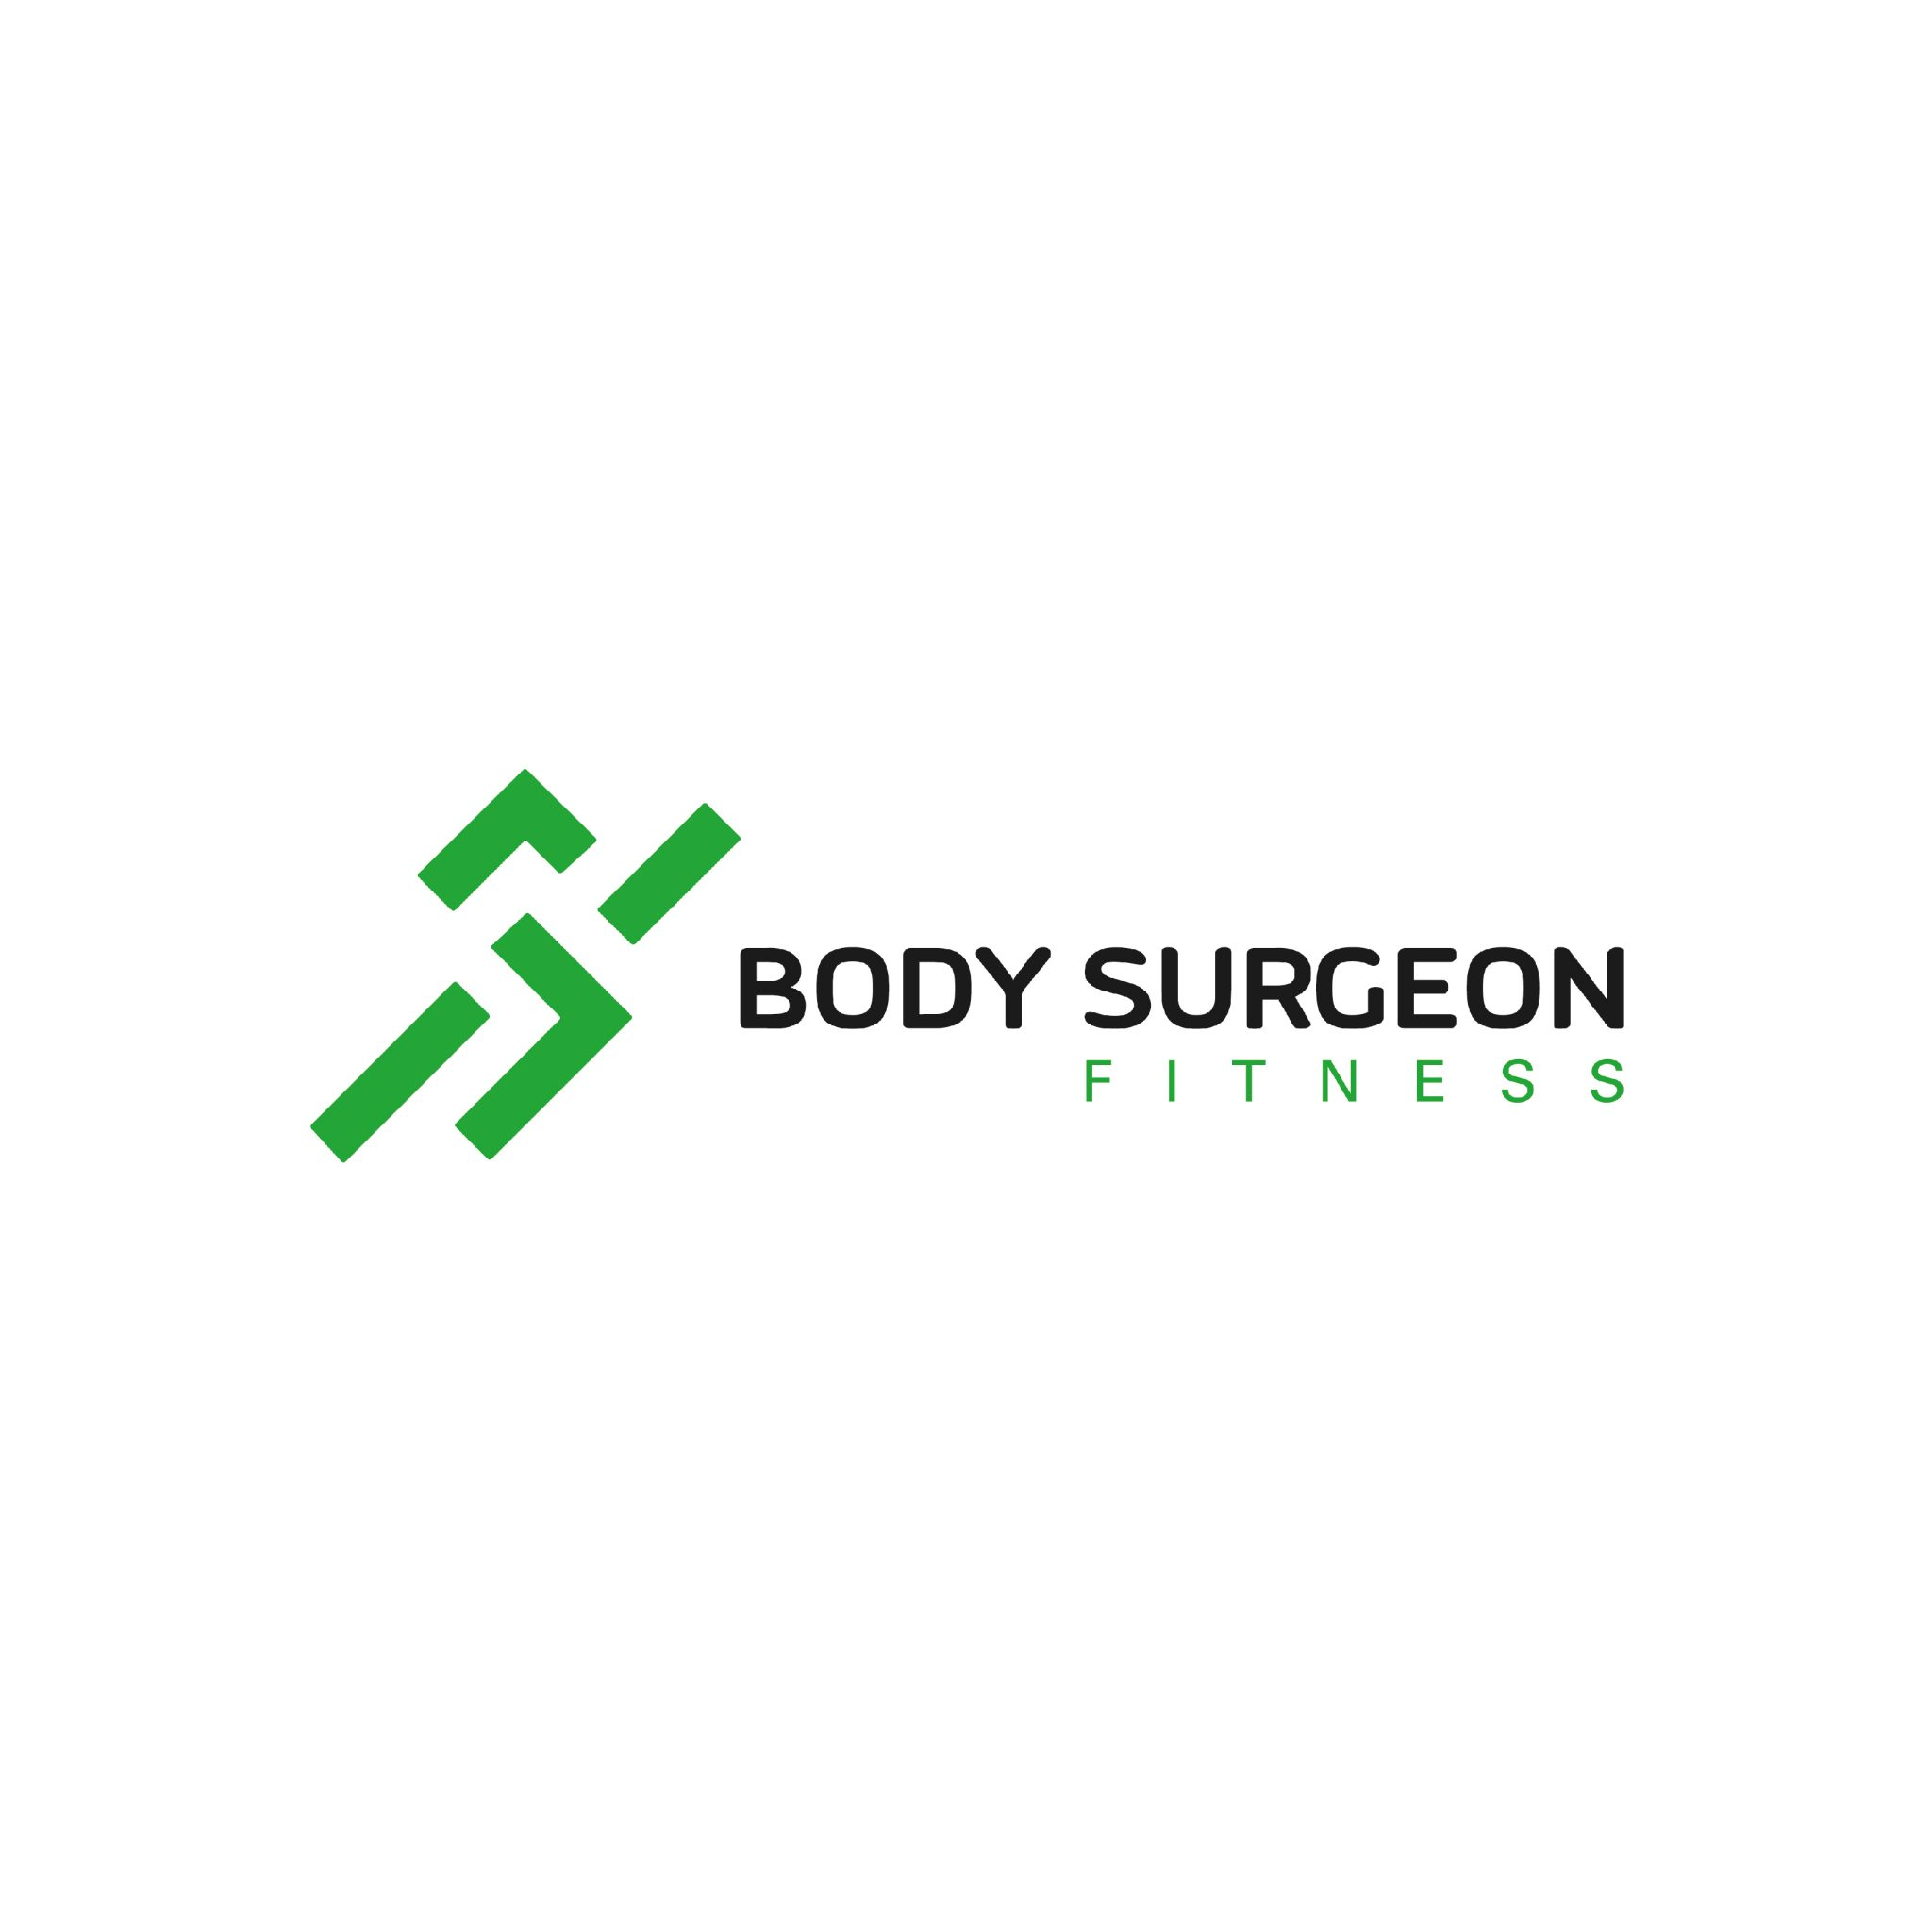 Body Surgeon Fitness